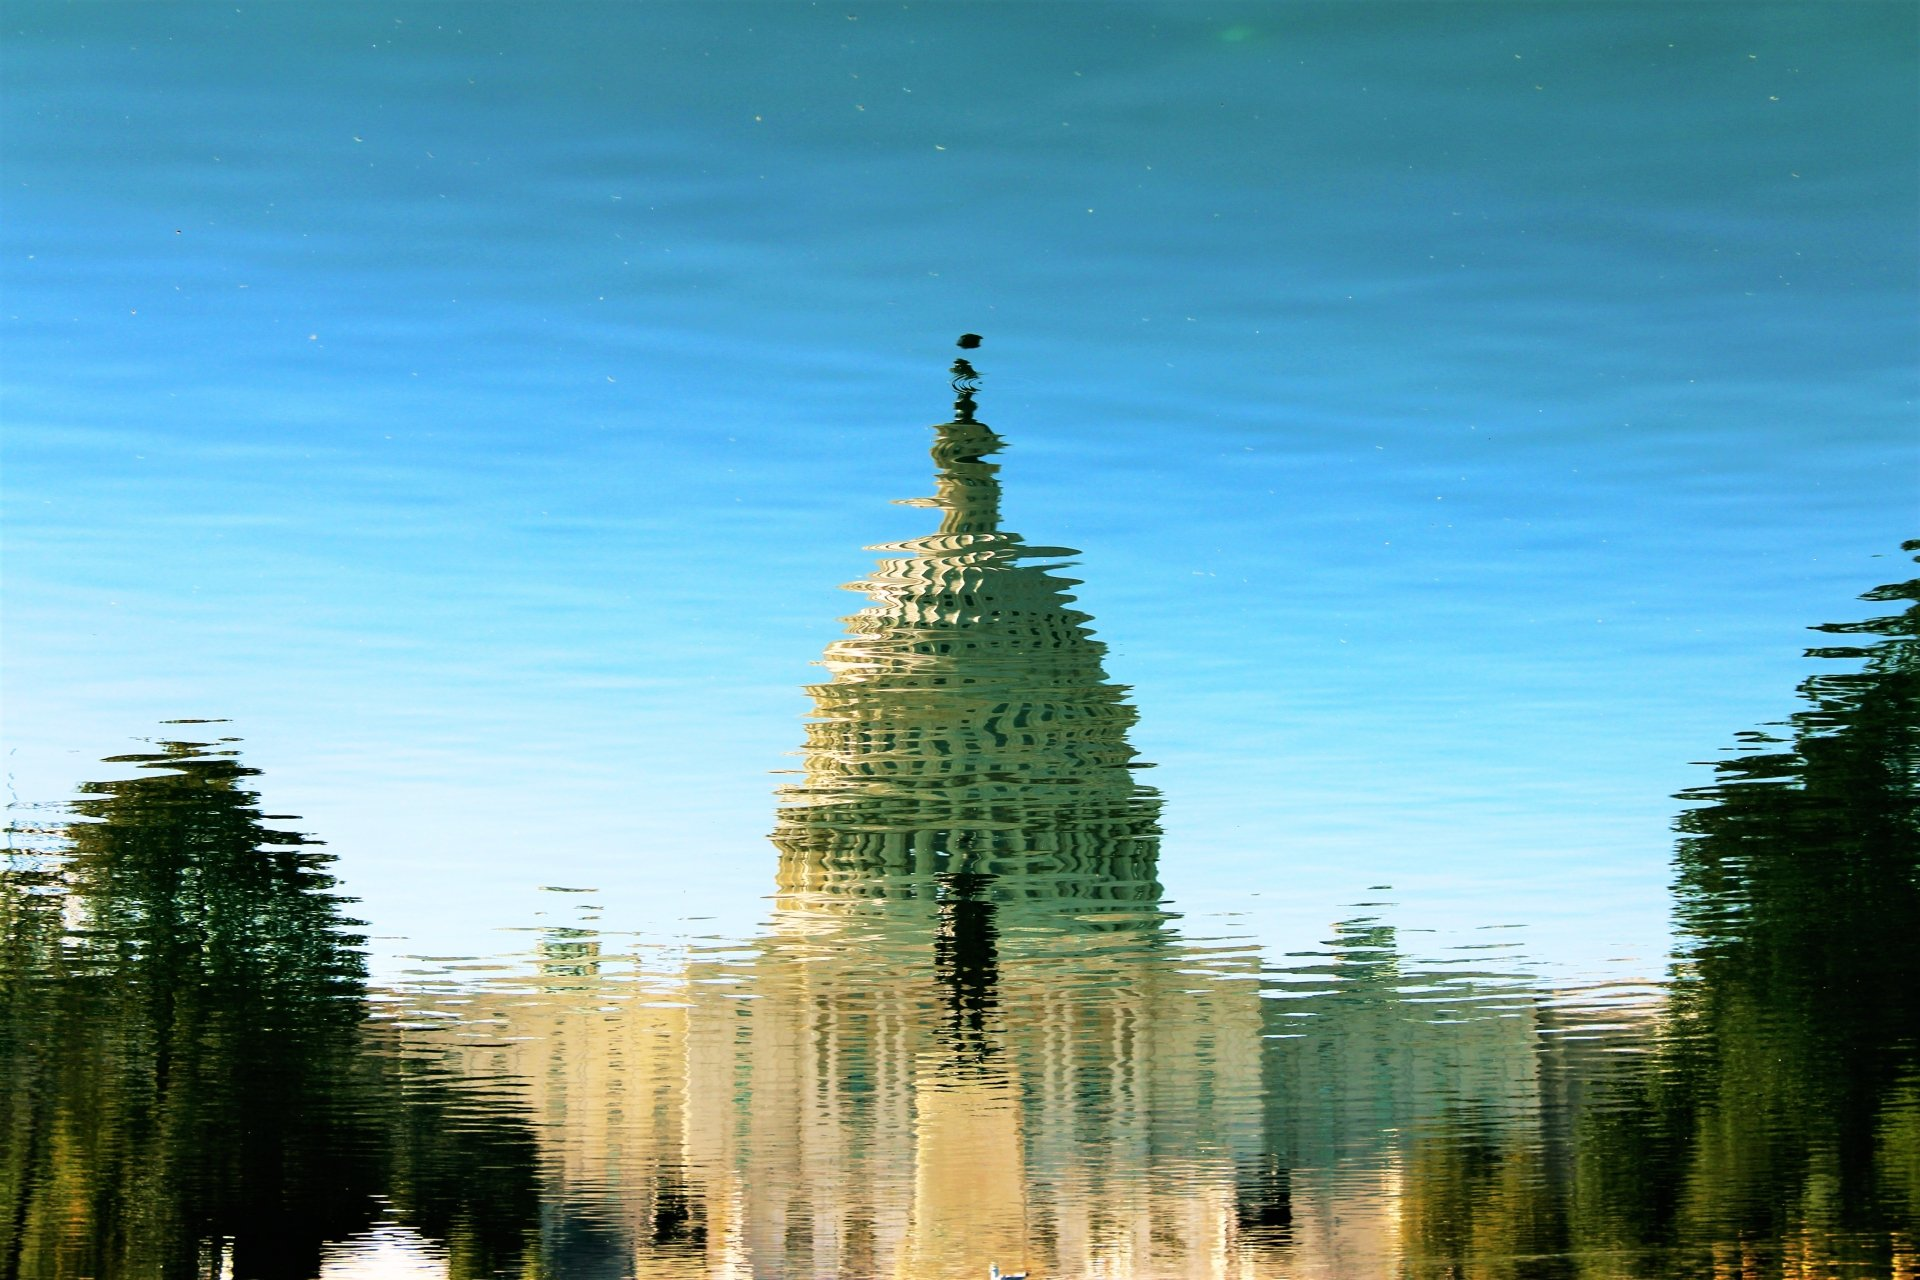 Man Made - United States Capitol  Reflection Building Capitol Building Washington Wallpaper